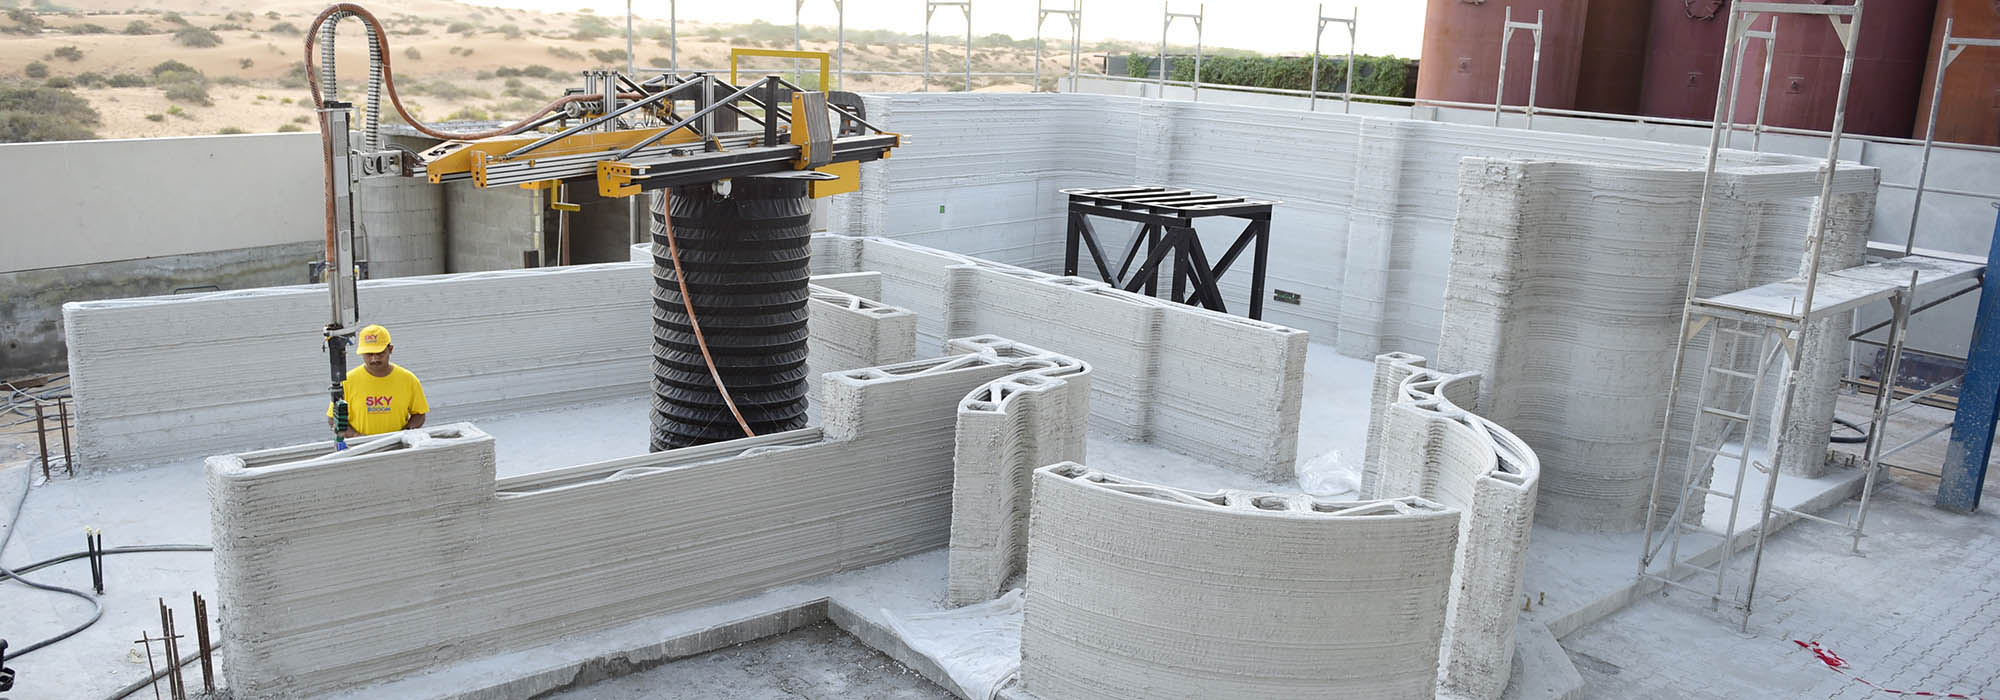 3d printing building construction structure takes shape